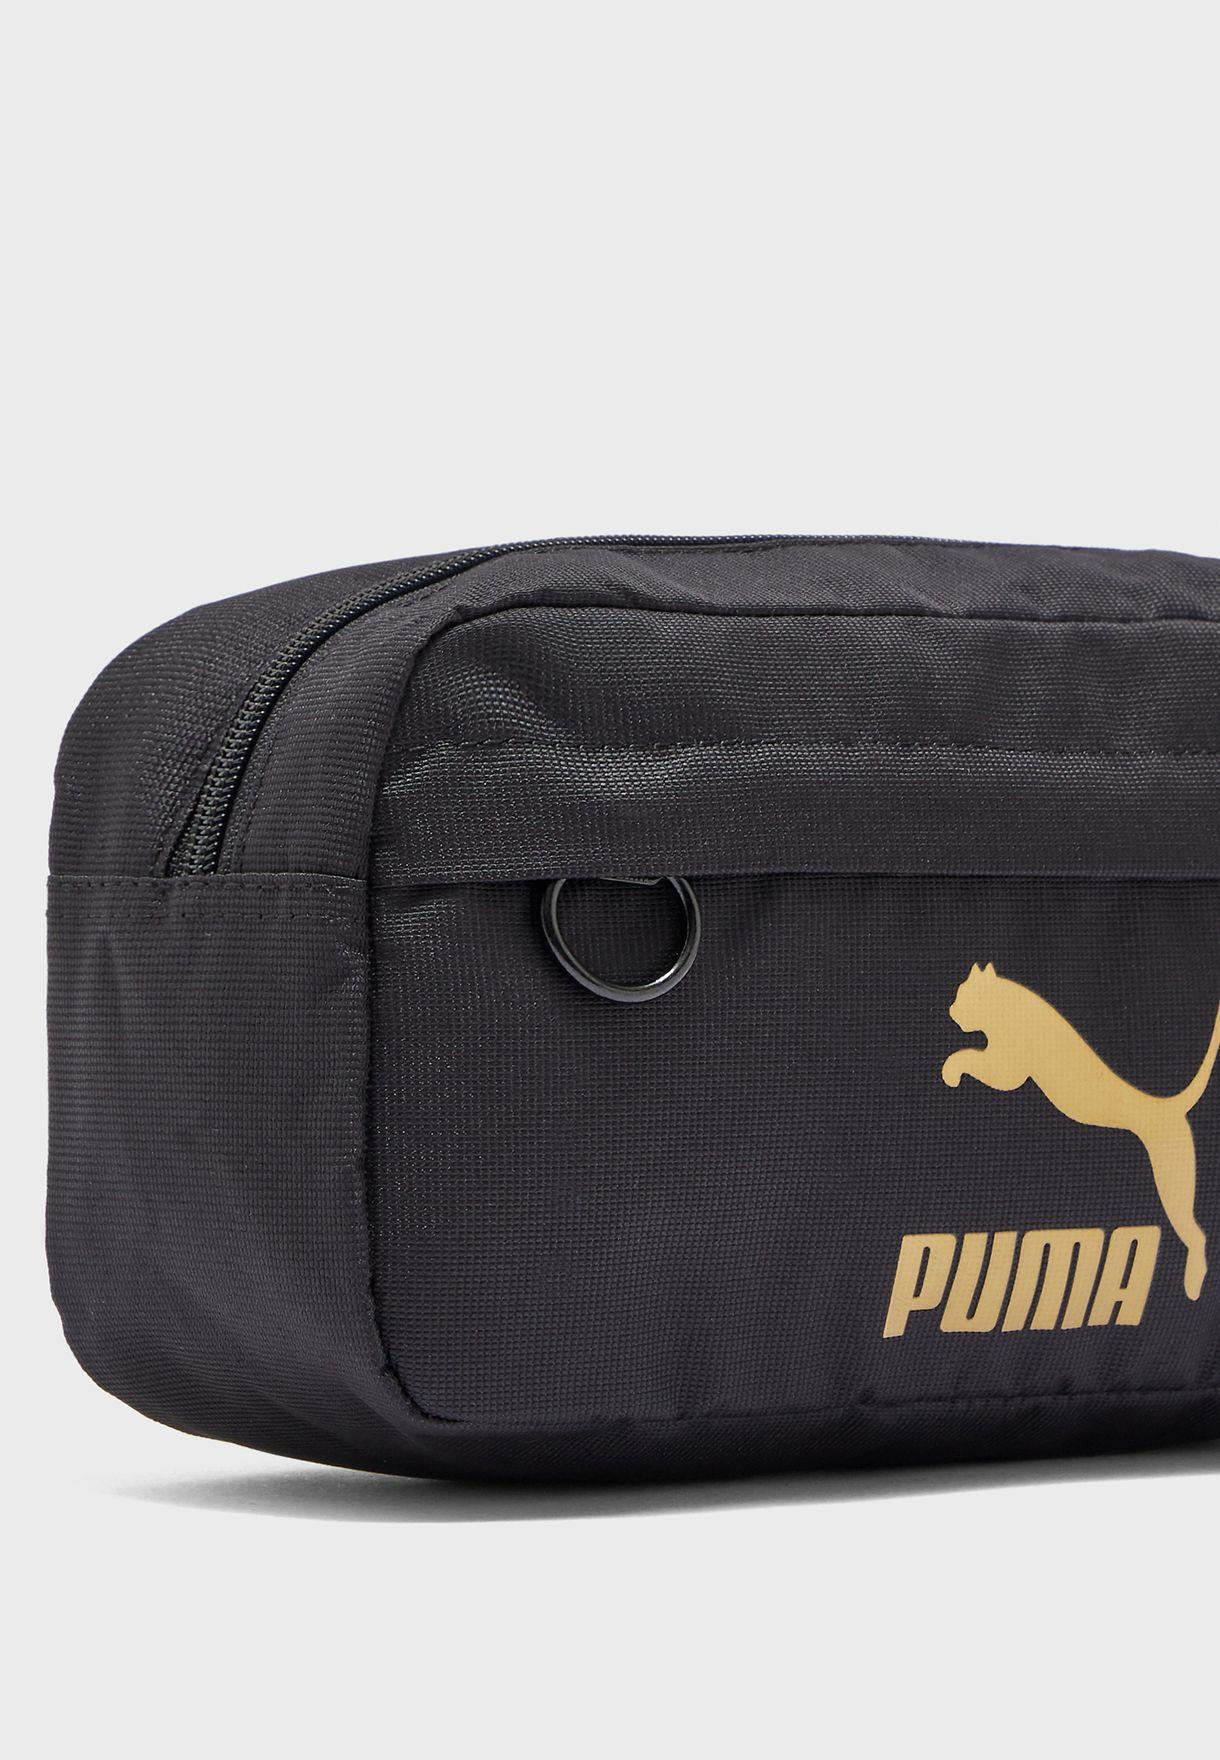 Puma 76646-01 ORIGINALS BUM BAG BEL ÇANTASI 8 x 27 x 13.5cm